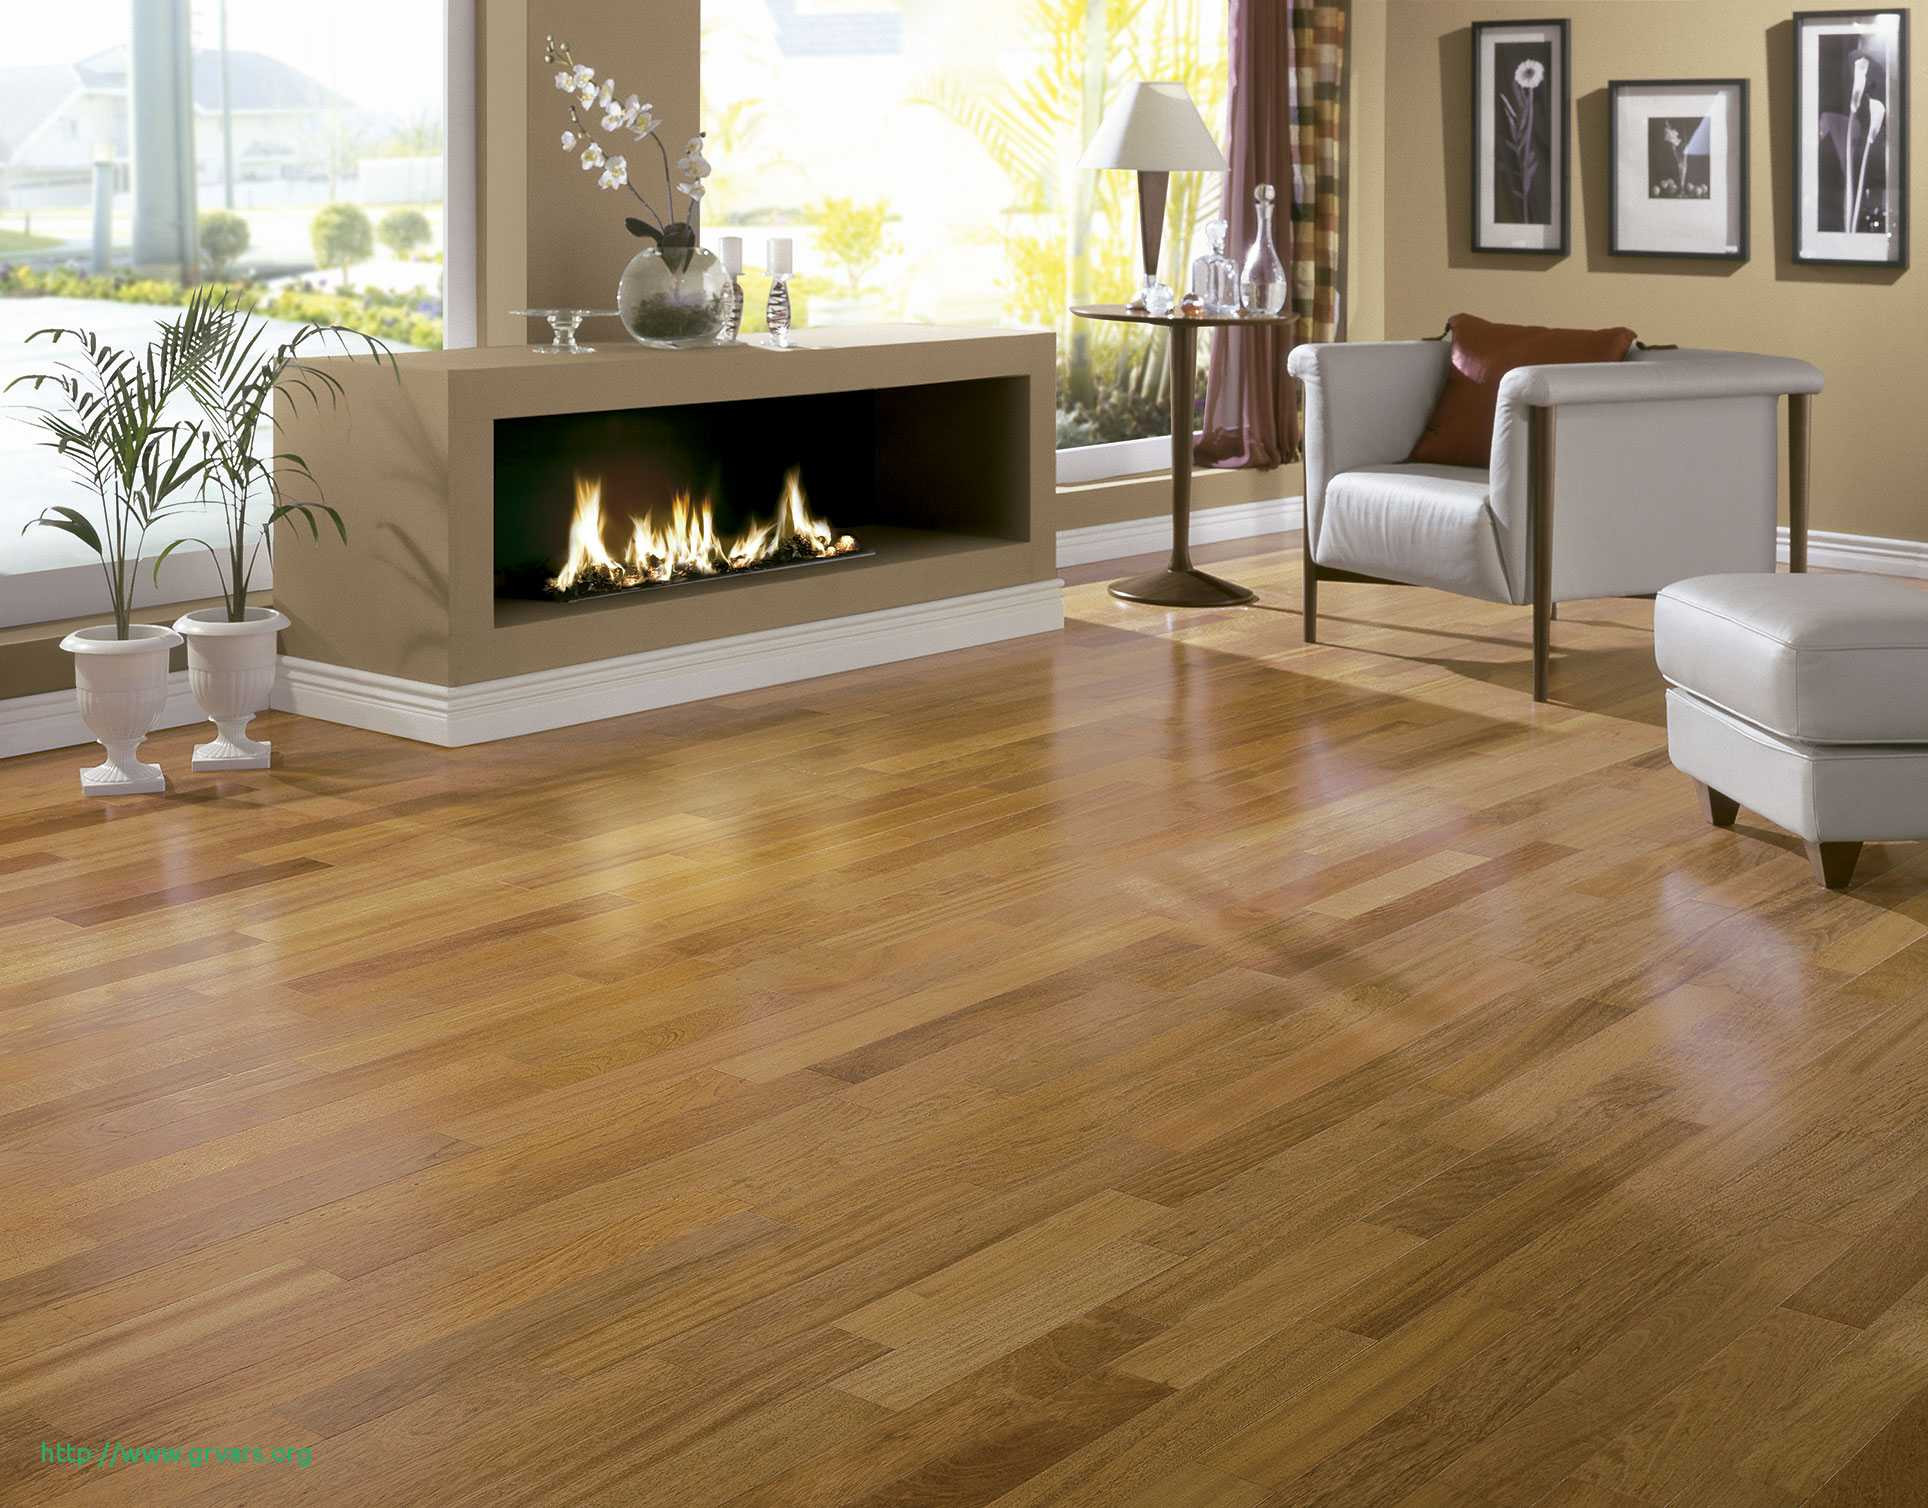 Home Depot solid Hardwood Flooring Of Hardwood Floor Thickness Best A‰lagant Red Oak solid Hardwood Wood In Hardwood Floor Thickness Best Unique Engaging Discount Hardwood Flooring 5 where to Buy Inspirational 0d